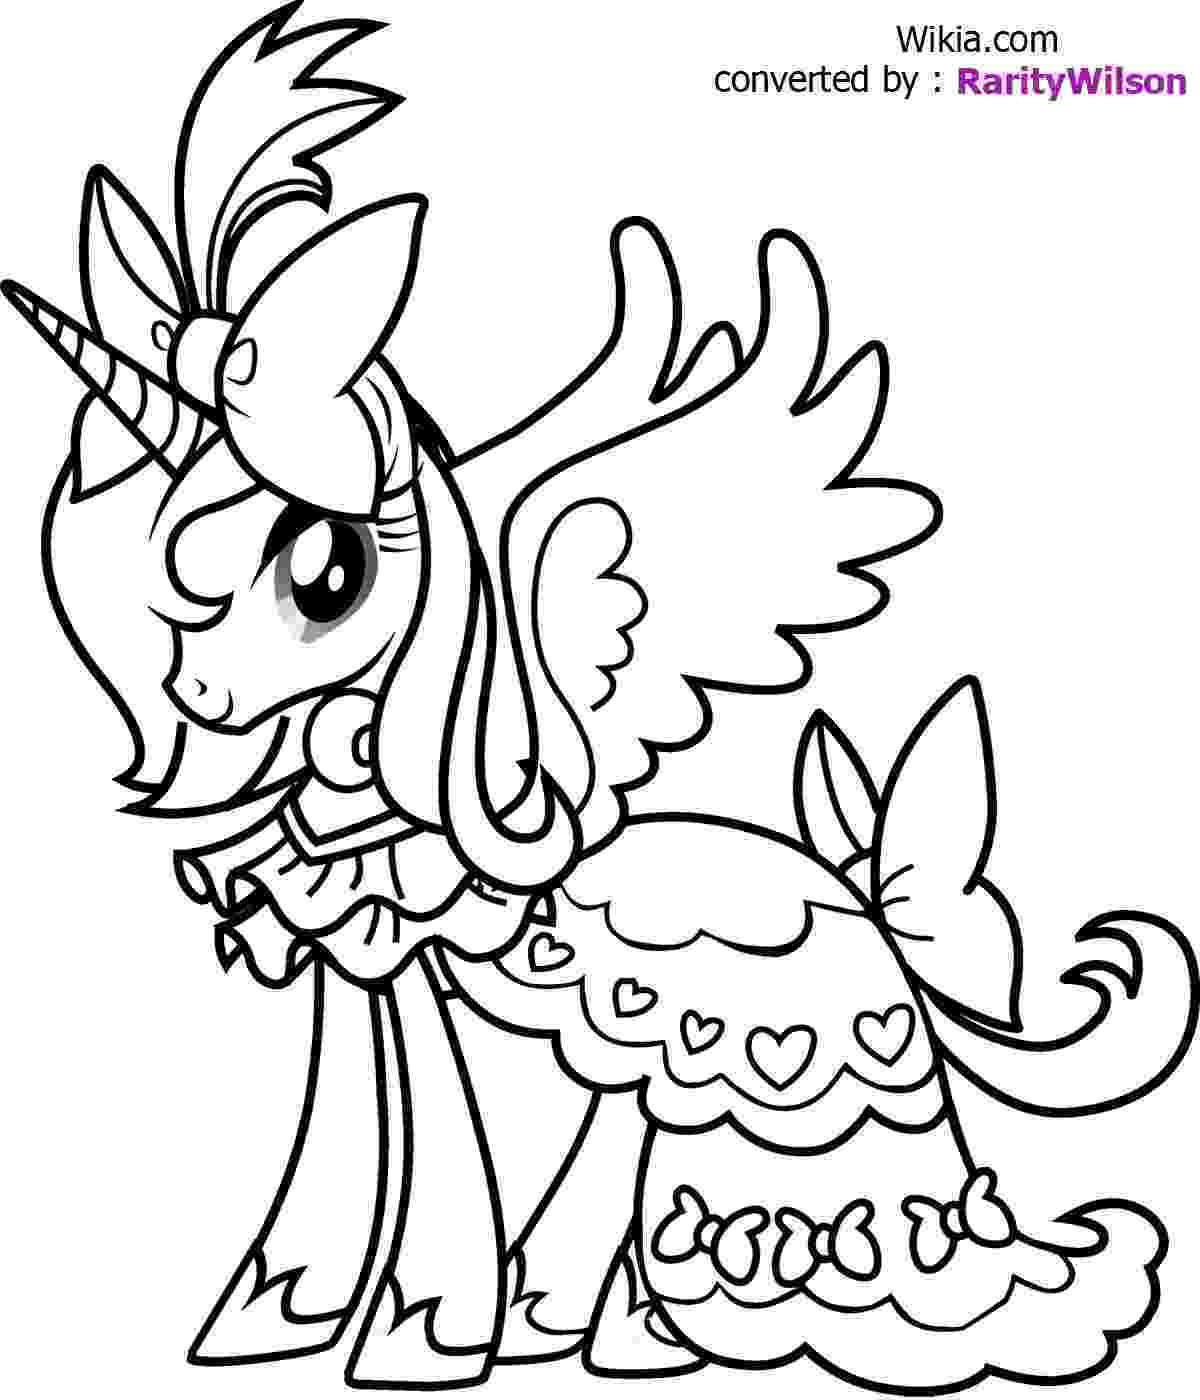 coloring pages of my little pony my little pony coloring pages team colors of pony little my coloring pages